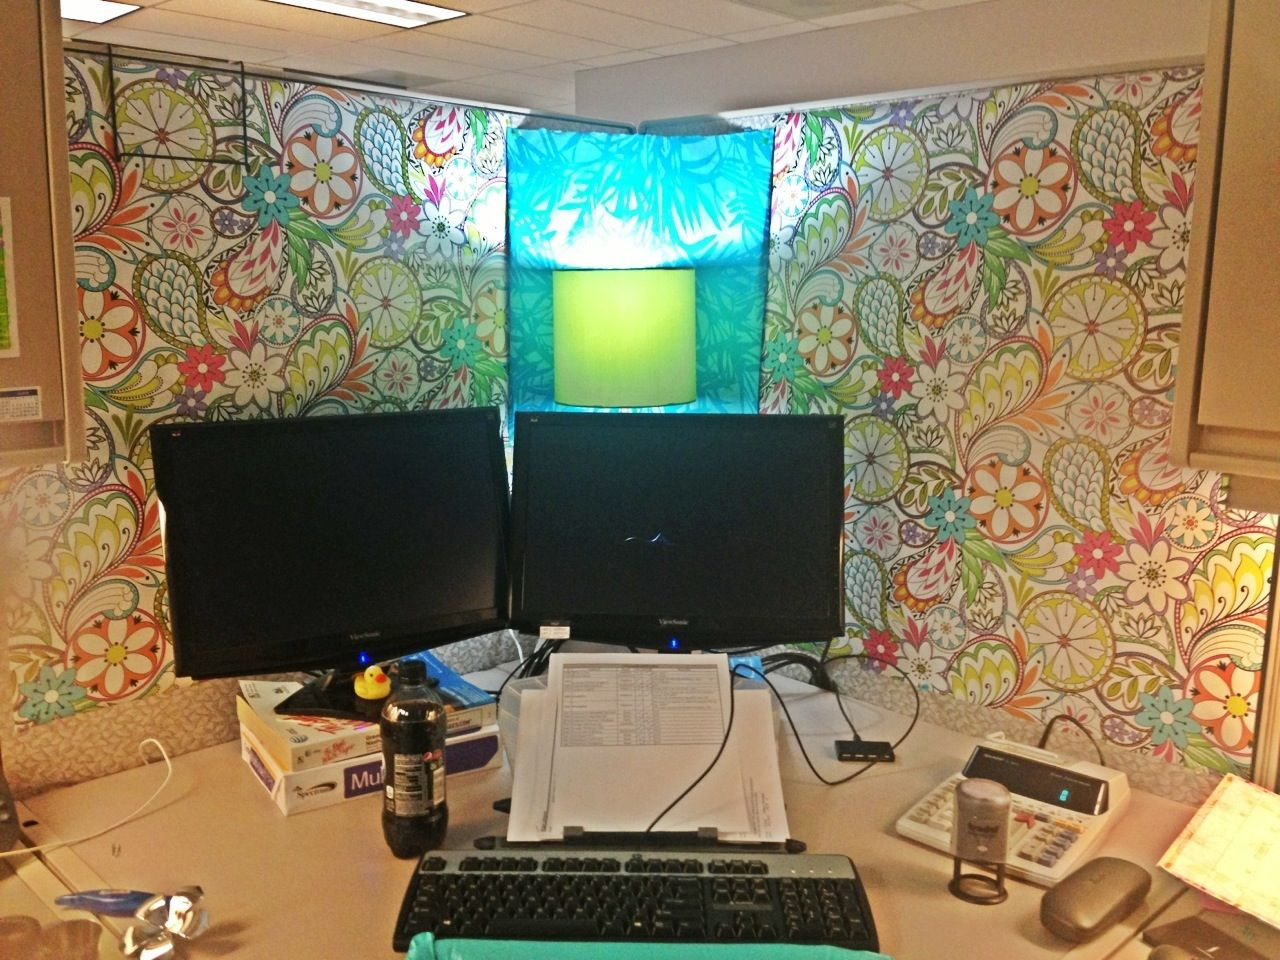 girly cubicle decorating ideas | Office Cubicle Idea Starters | Pinterest |  Cubicle, Office cubicles and Desks